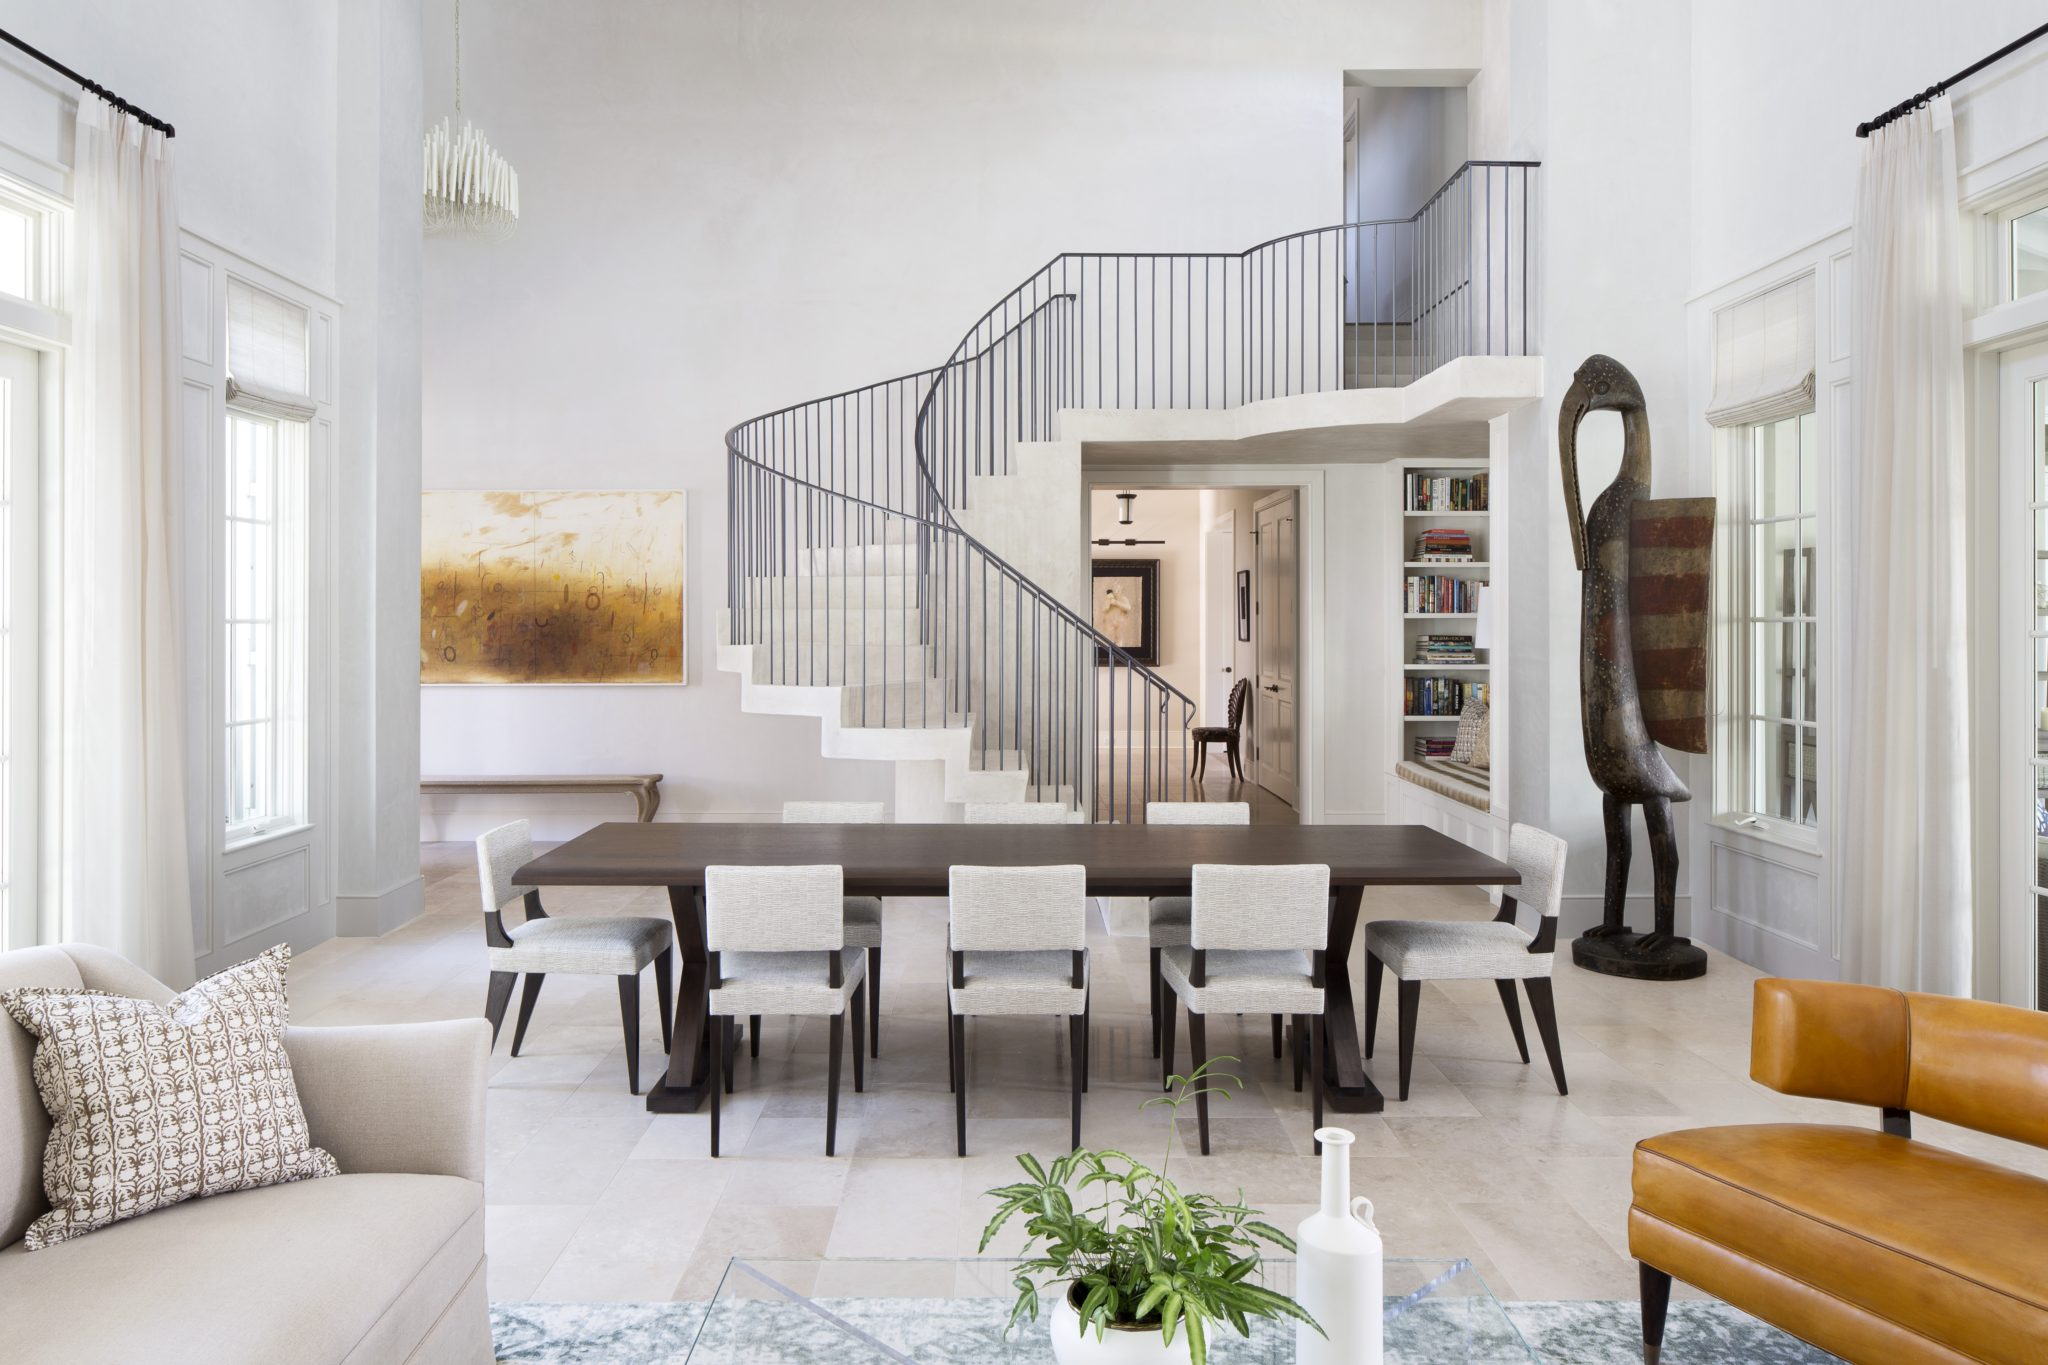 Artistic open concept living and dining room - Vero Beach, FL, by Greer Interior Design